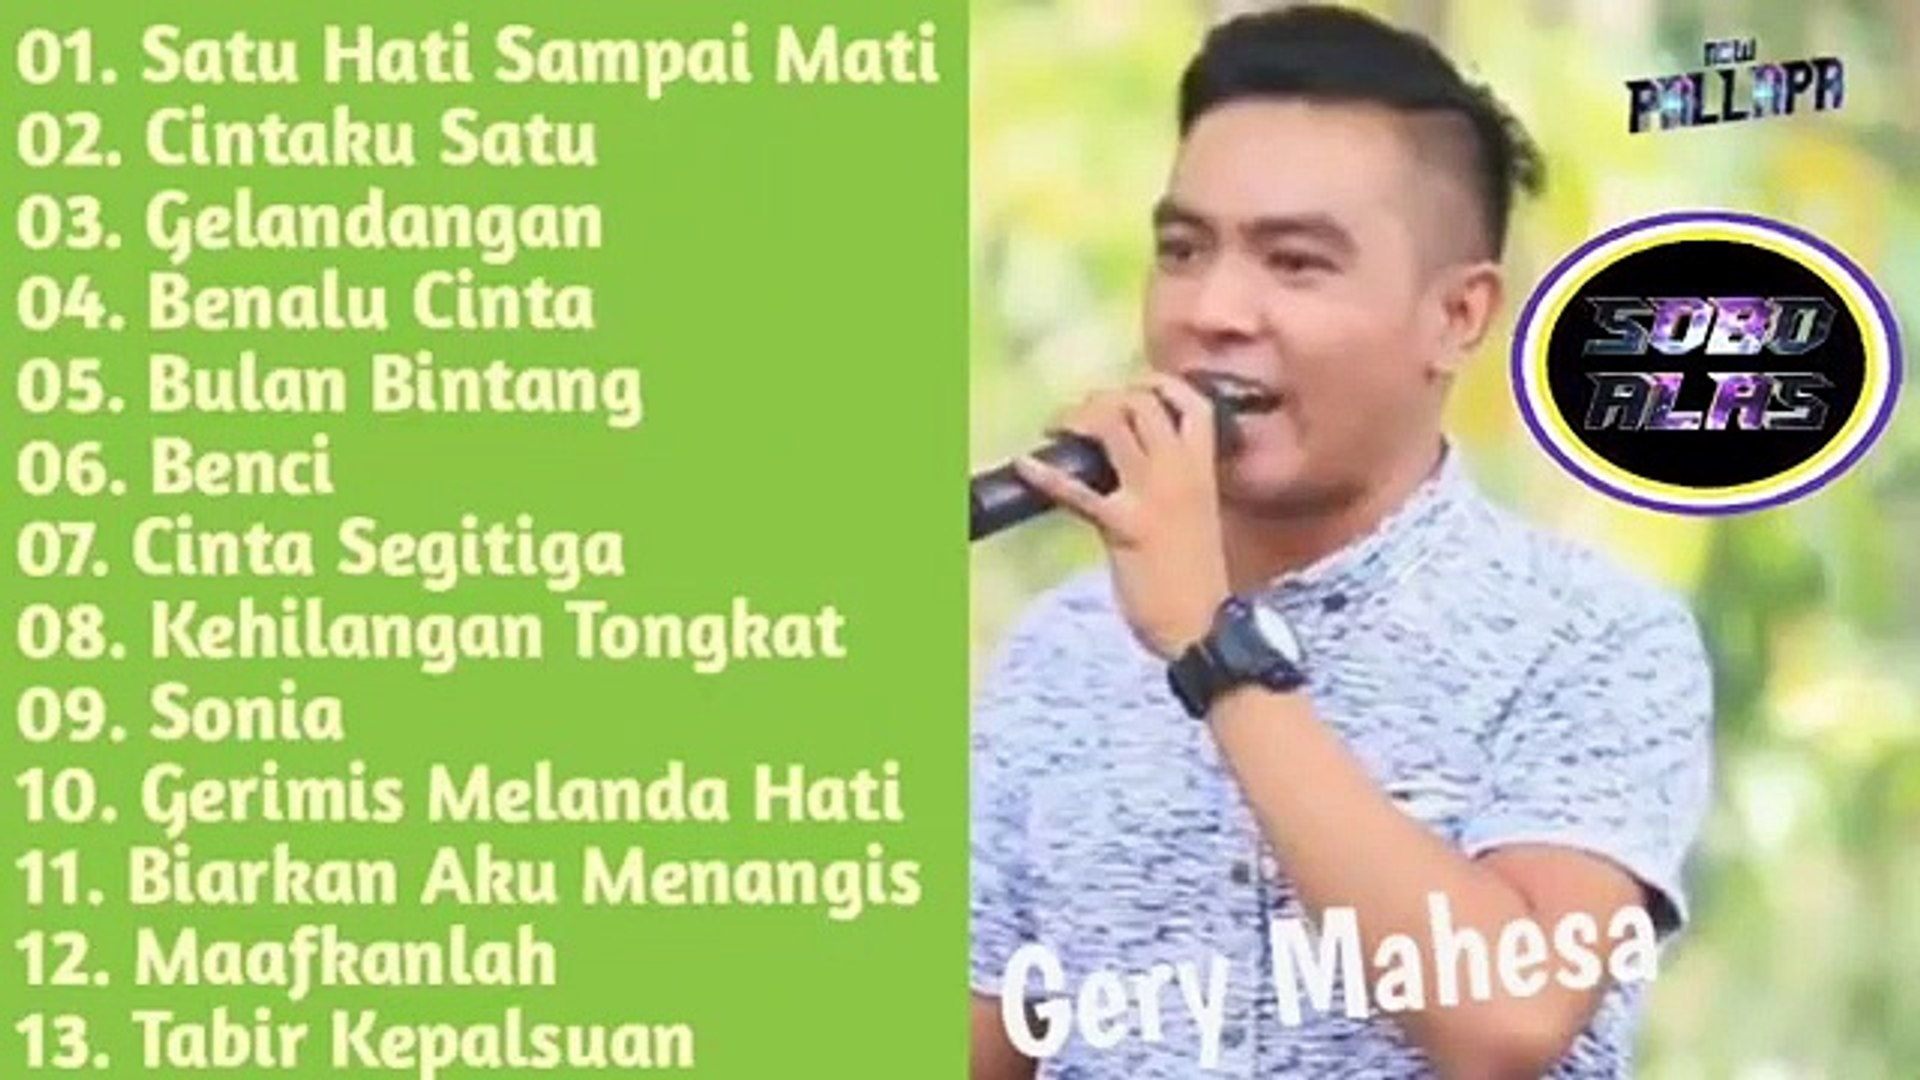 Gerry Mahesa Full Album 2020